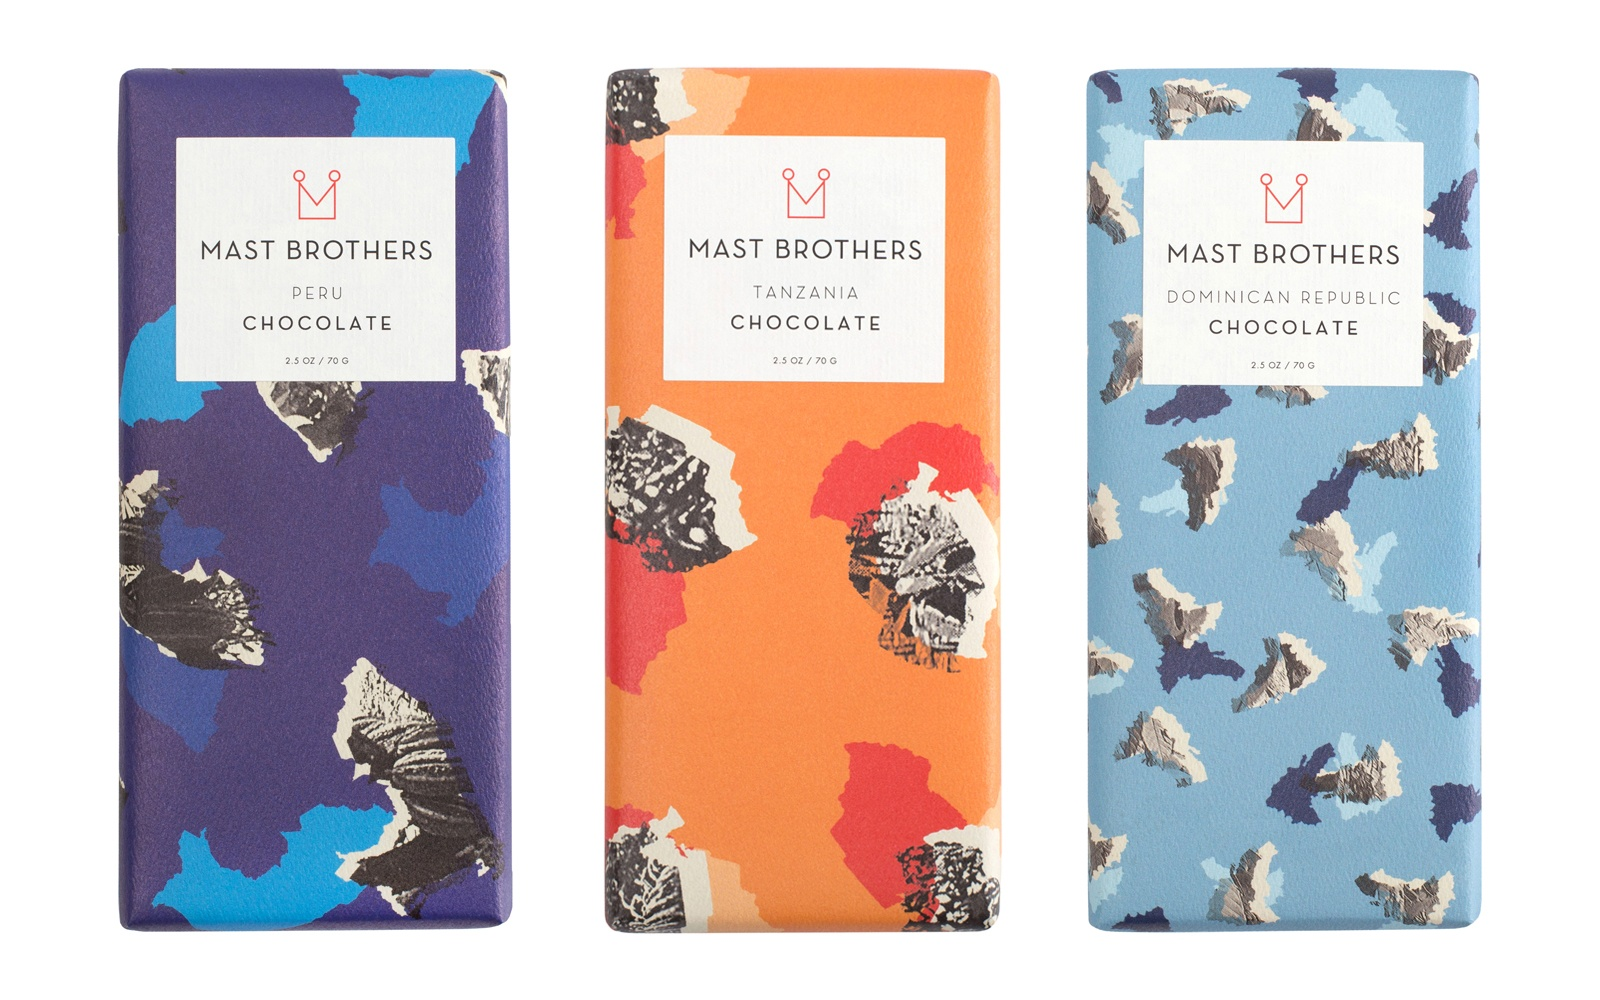 Mast Brothers Chocolates